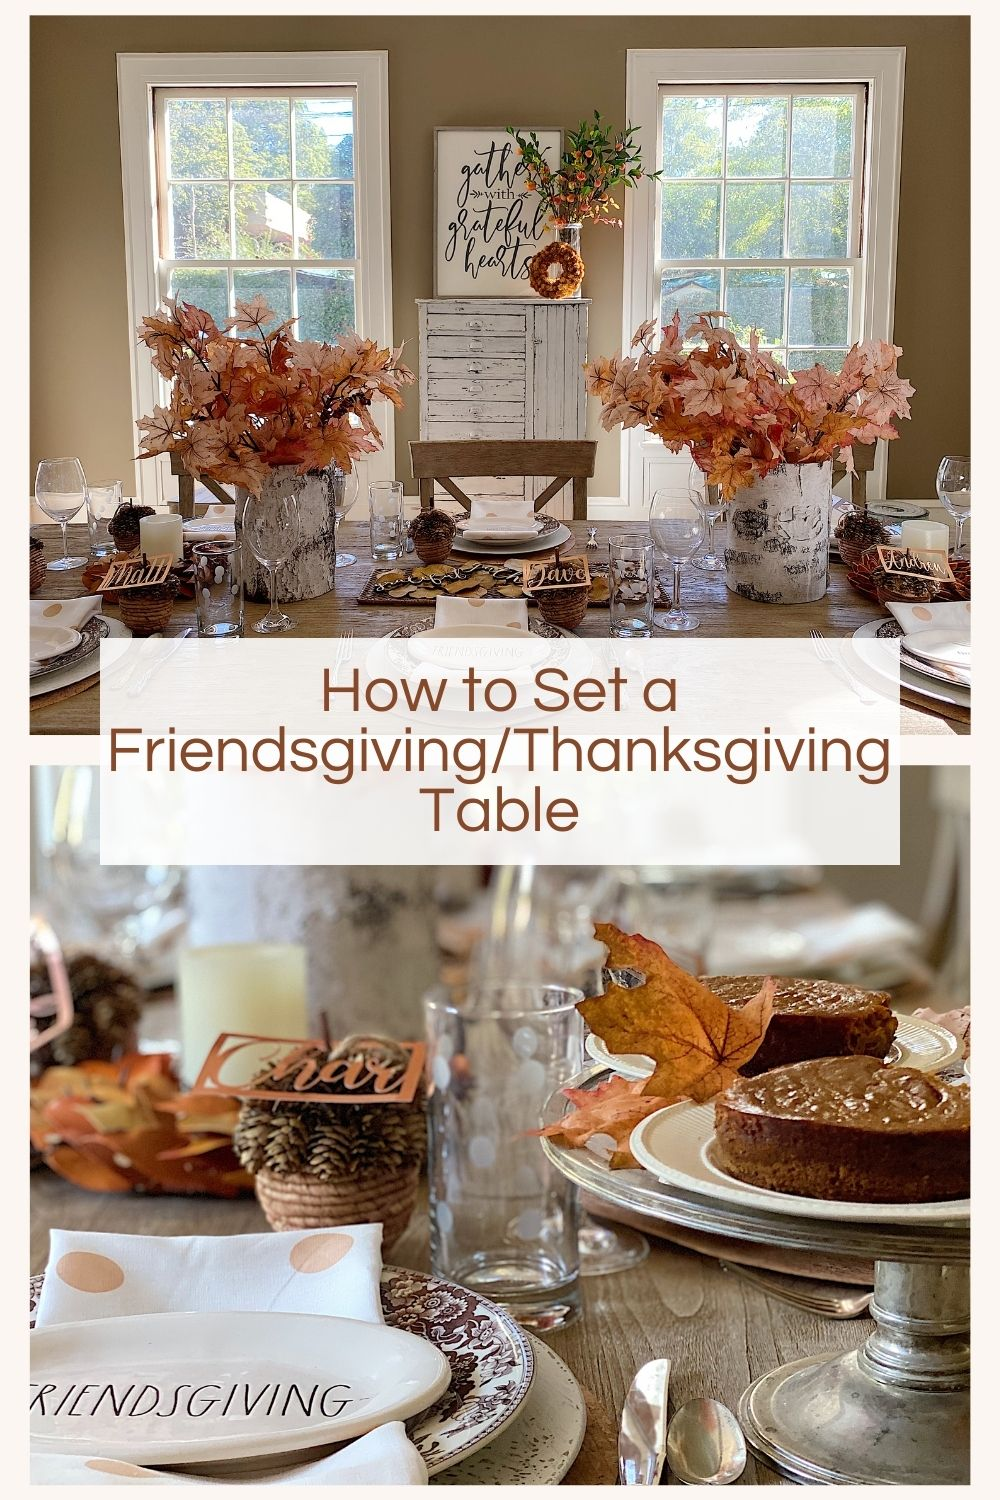 Today I am sharing some fun ideas and DIY's you can do for your Friendsgiving or Thanksgiving Dinner table.